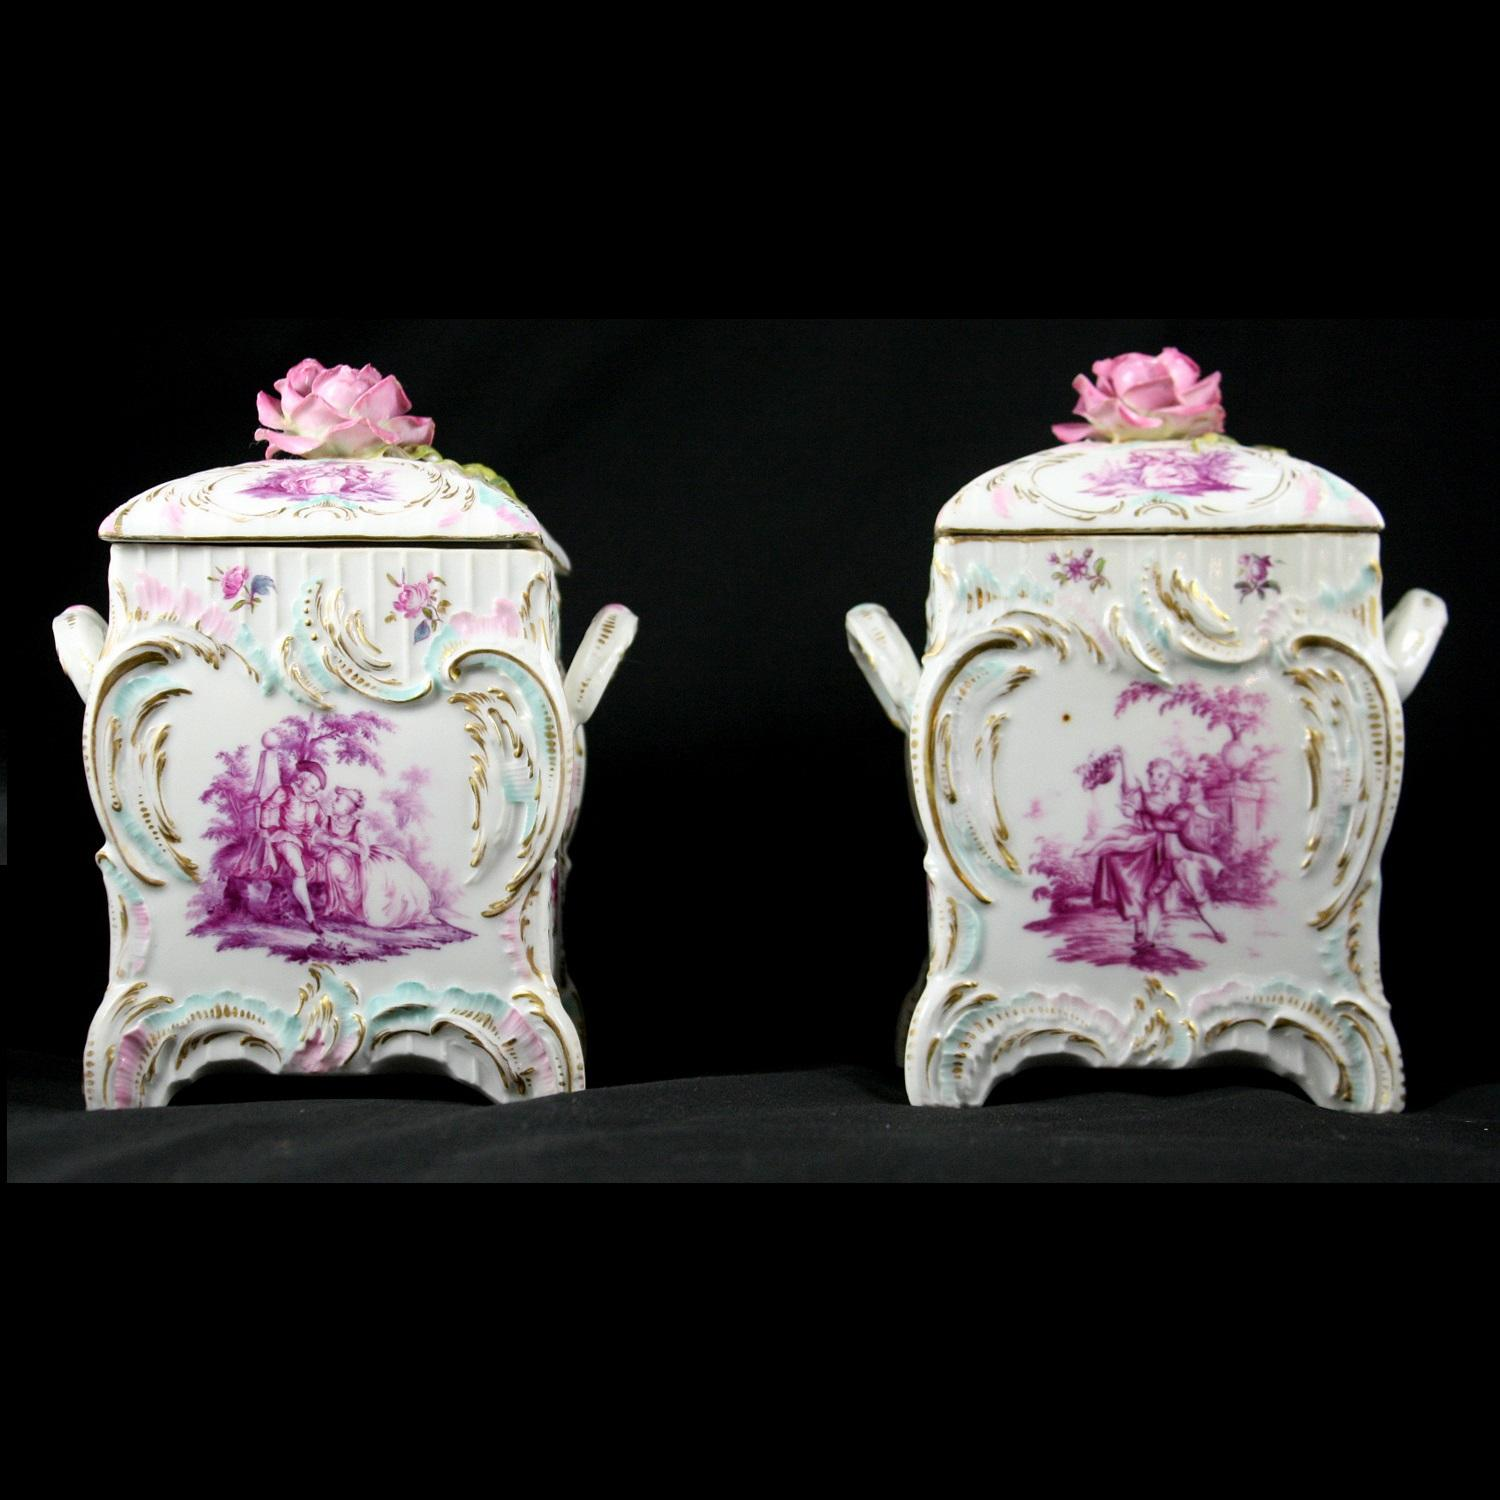 Pair of KPM Porcelain Containers